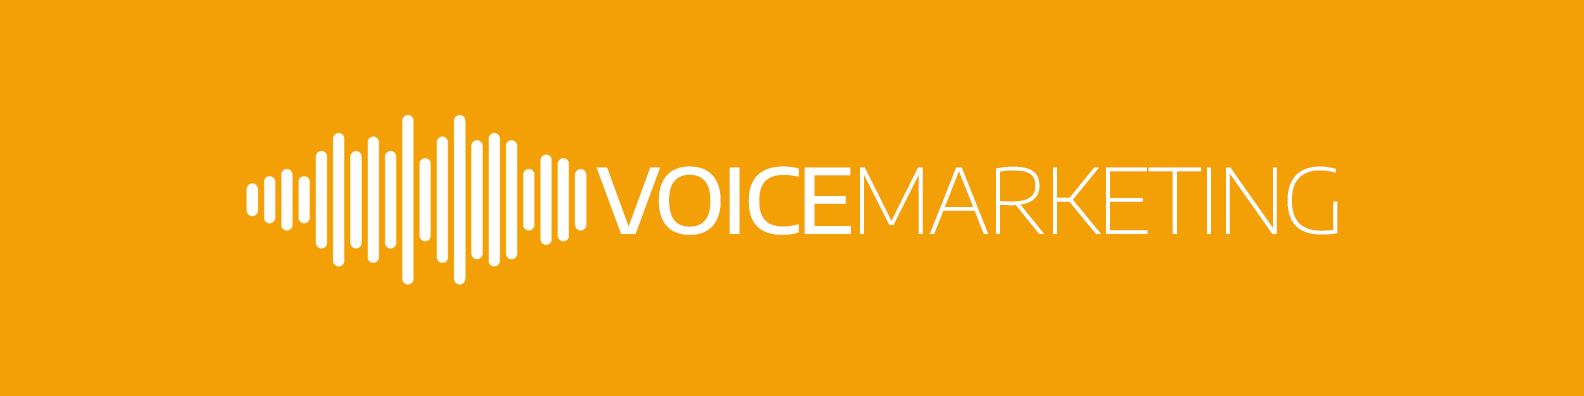 VoiceMarketing-Page-Header-1584x396